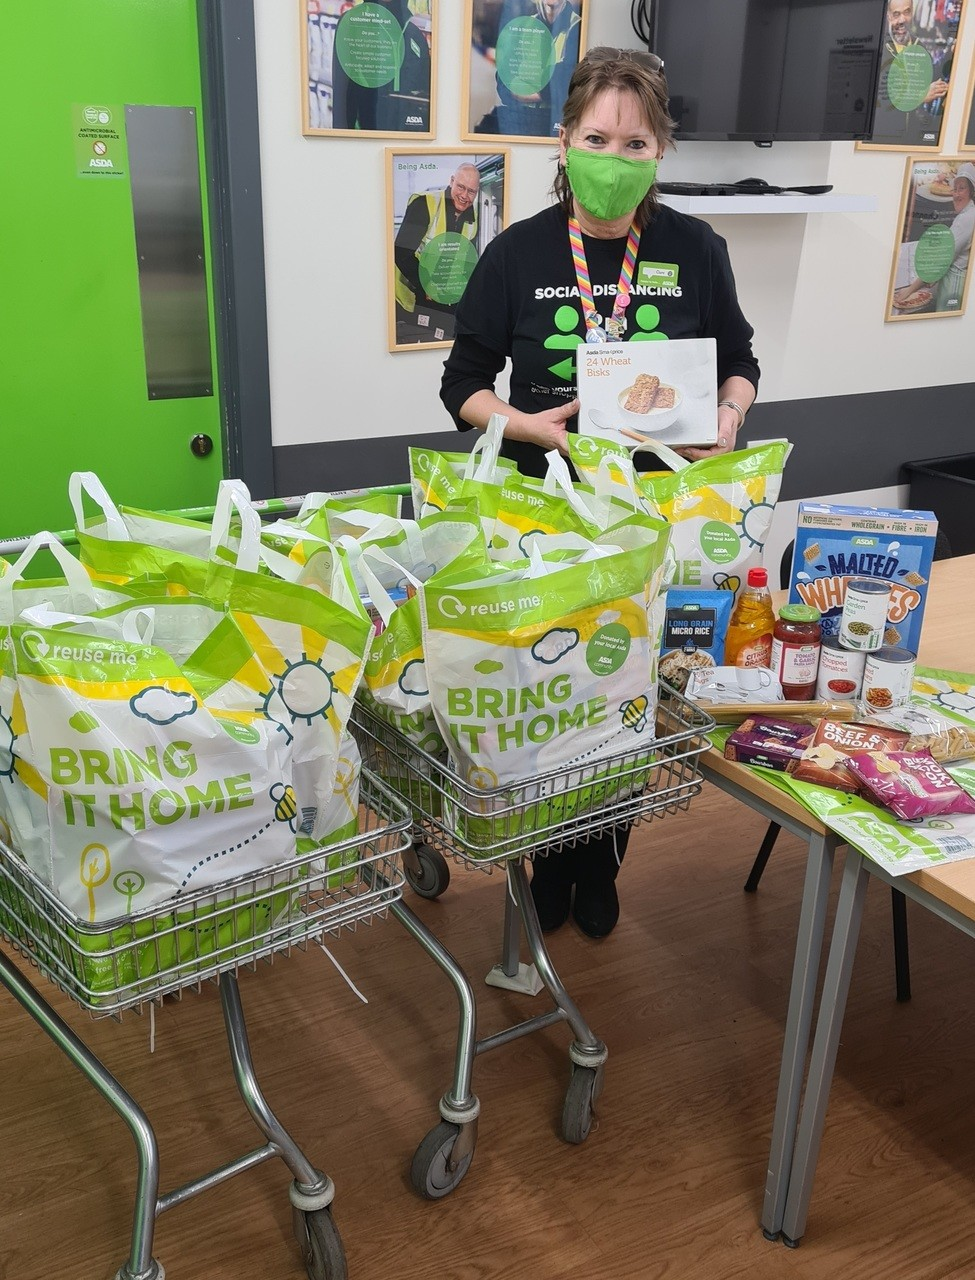 Fight Hunger family bags | Asda Newport Isle of Wight